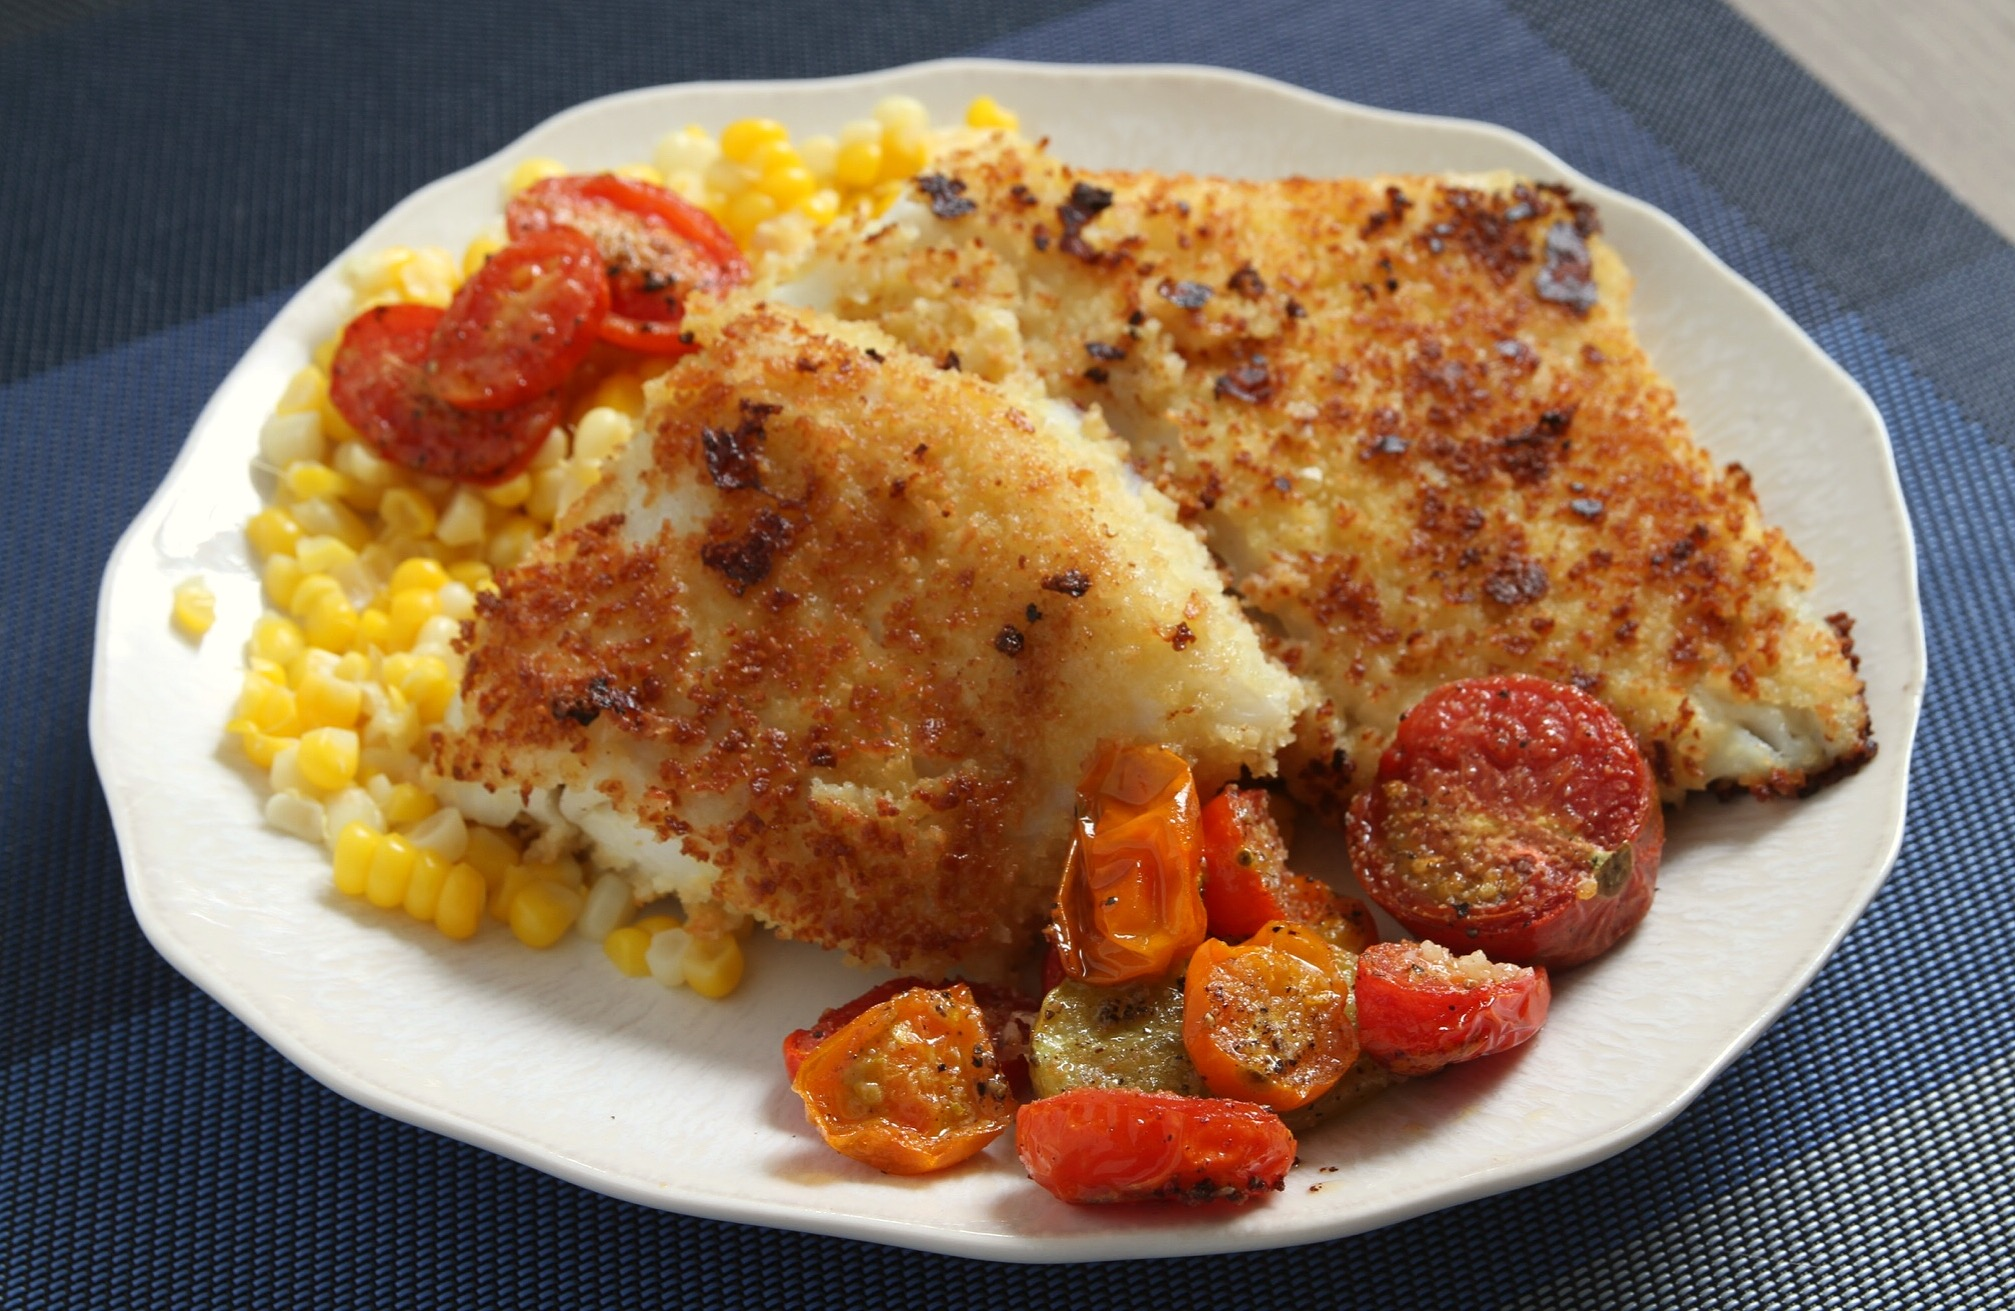 Pan fried cod with roasted tomatoes and corn.